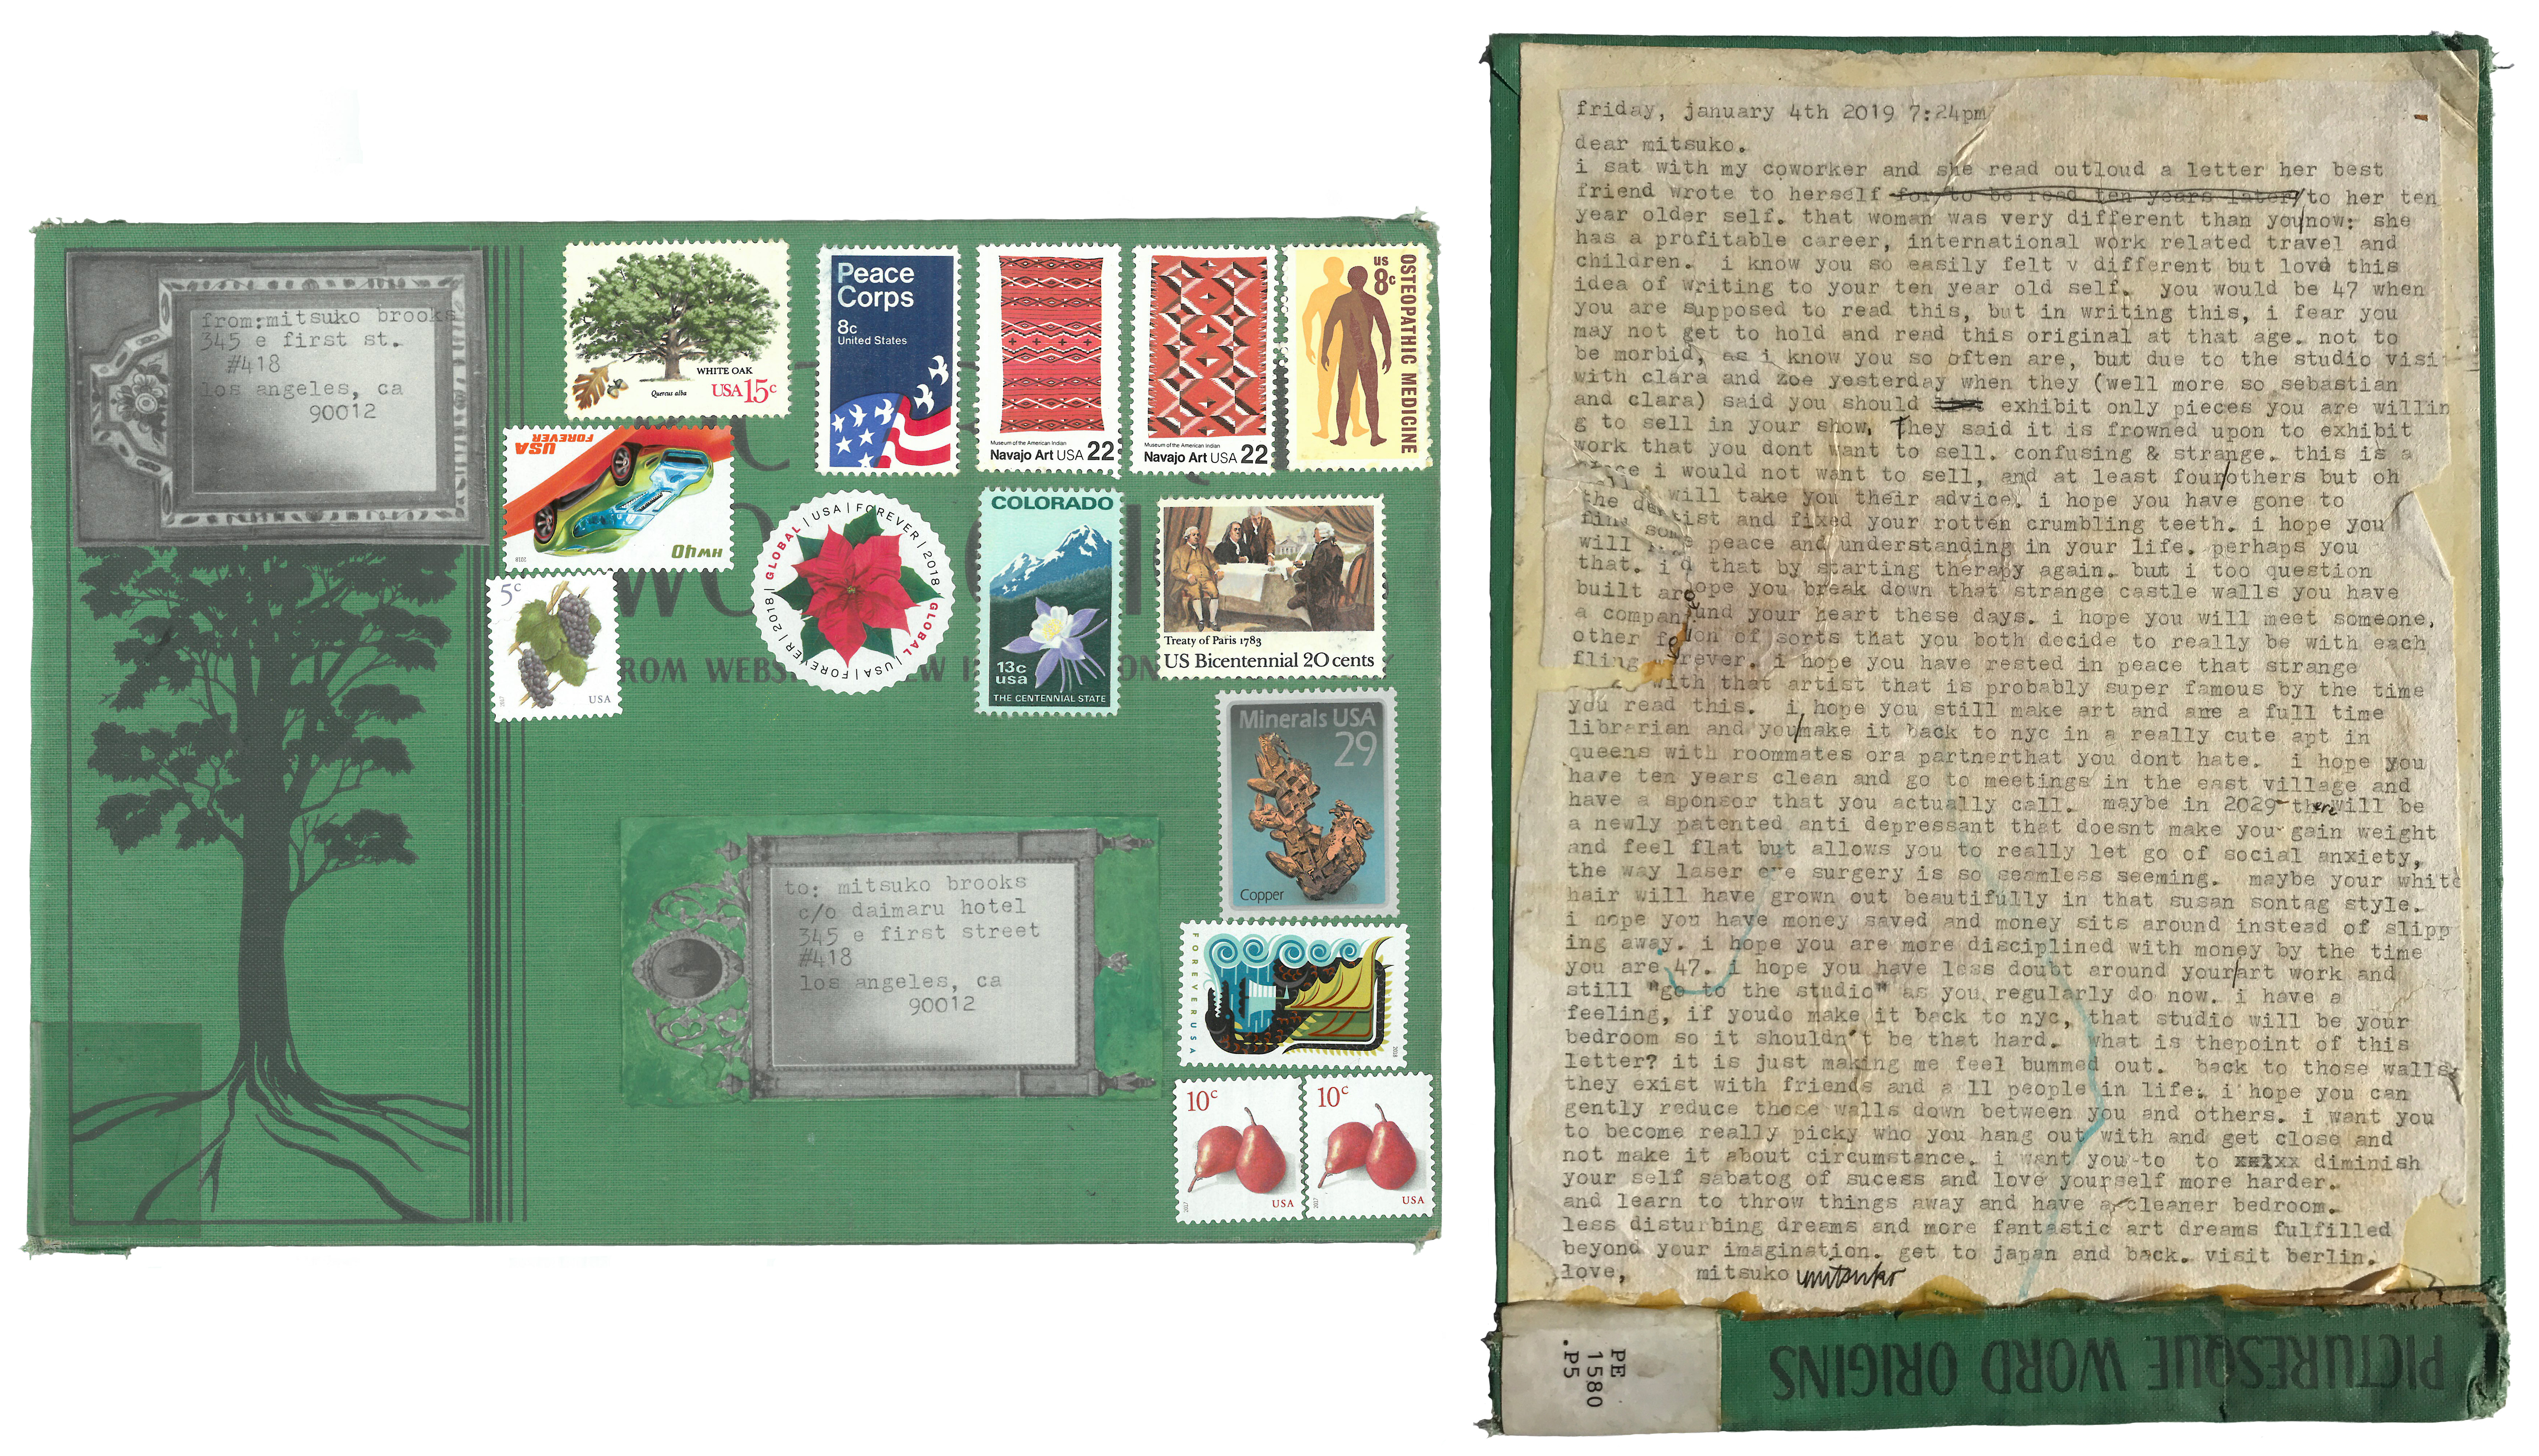 Mitsuko Brooks. <em>Mail to M.B., Jan. 4, 2019</em>, 2019. Ink, postage stamps, and paper collaged onto detached book cover, 9 7/8 x 7 1/8 inches (25 x 18 cm)